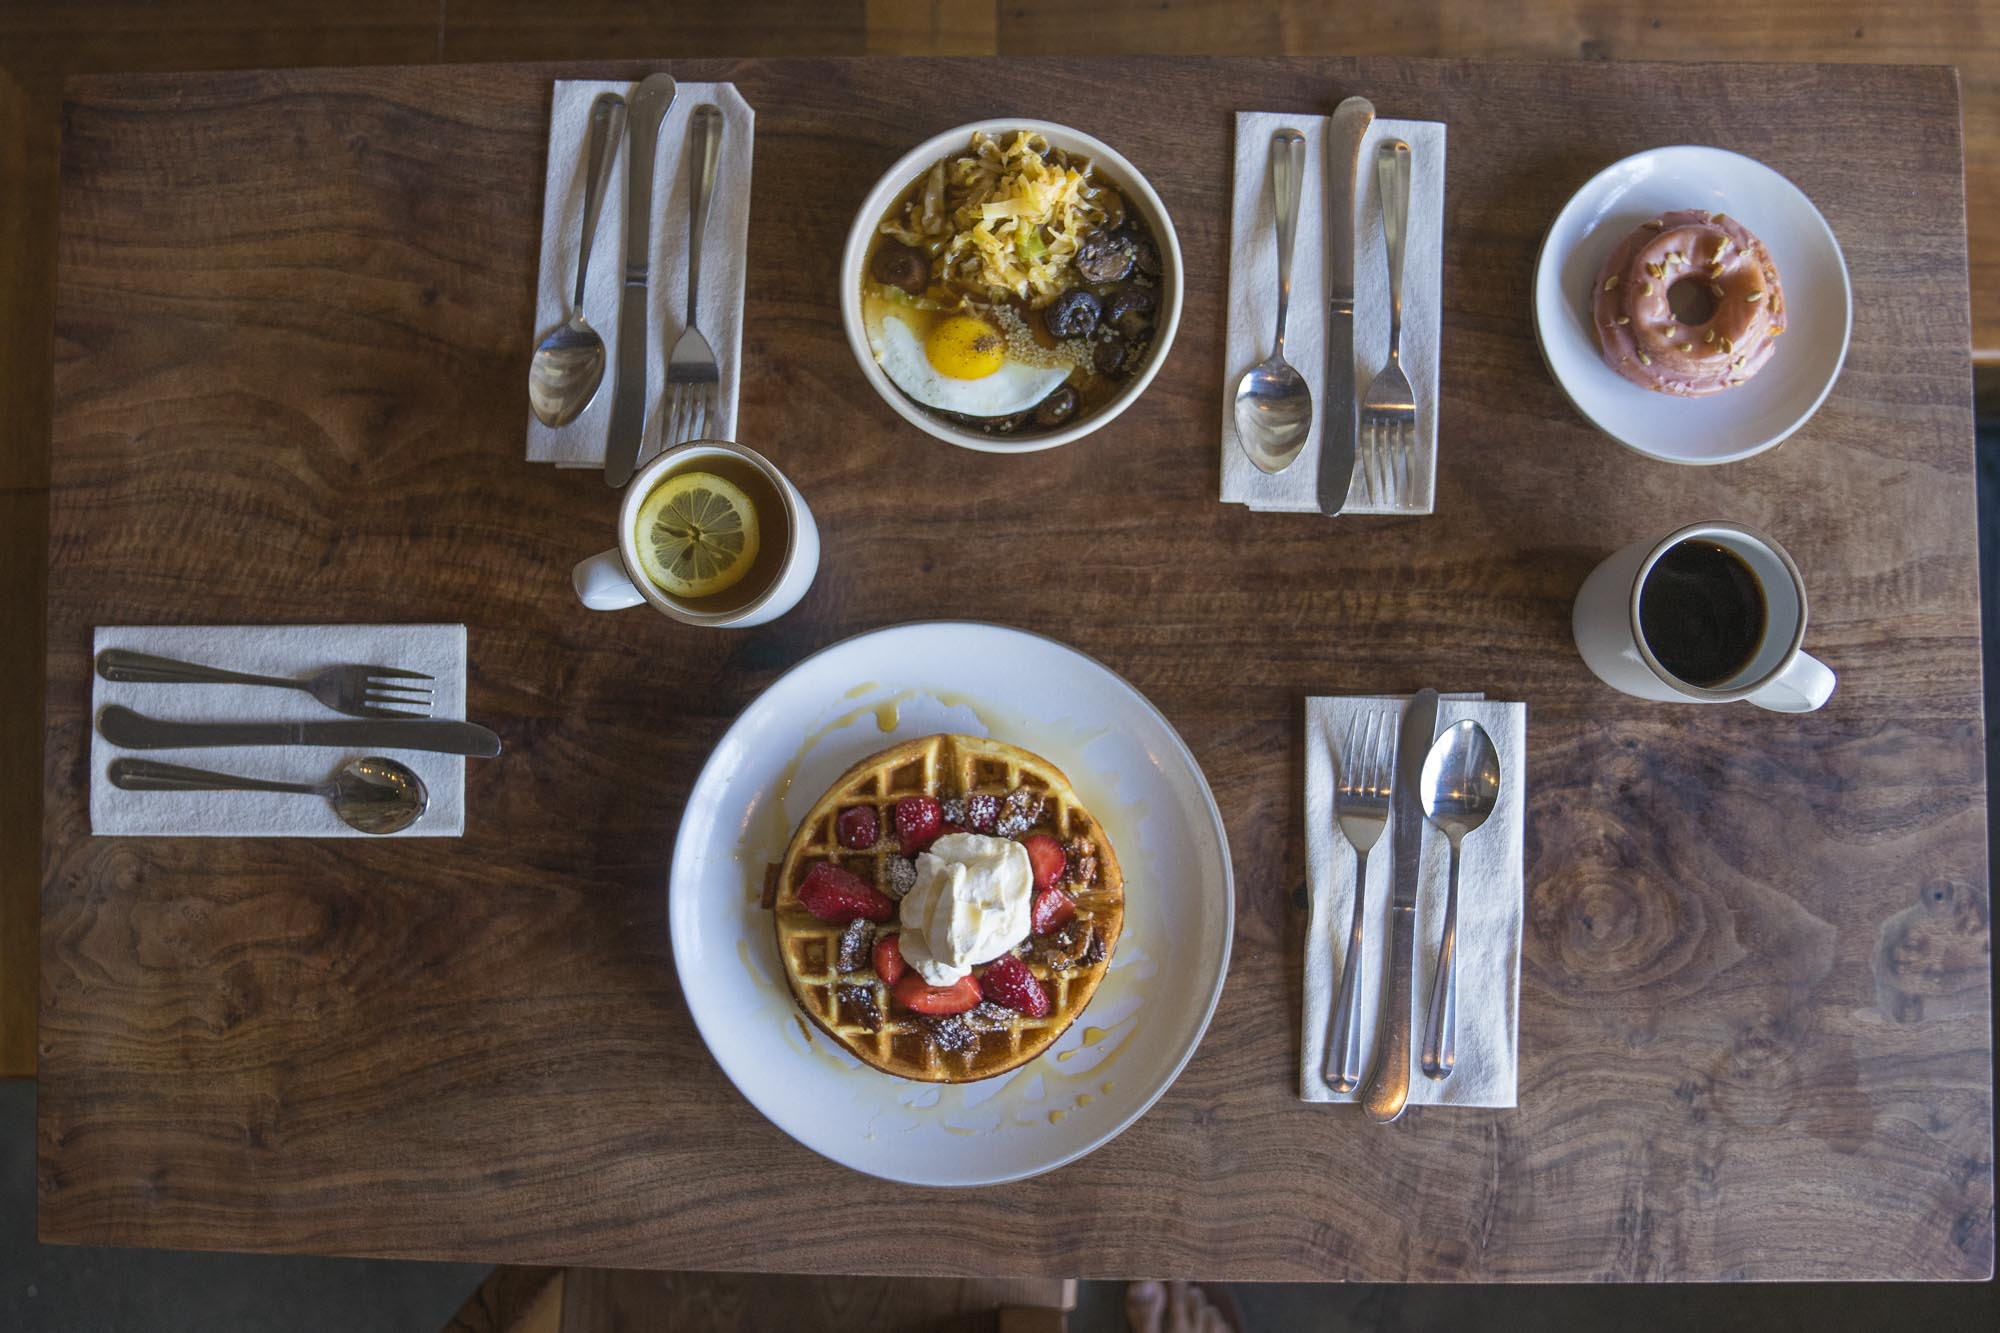 A breakfast spread of food at outerland in San Francisco for Dirt Road Travels